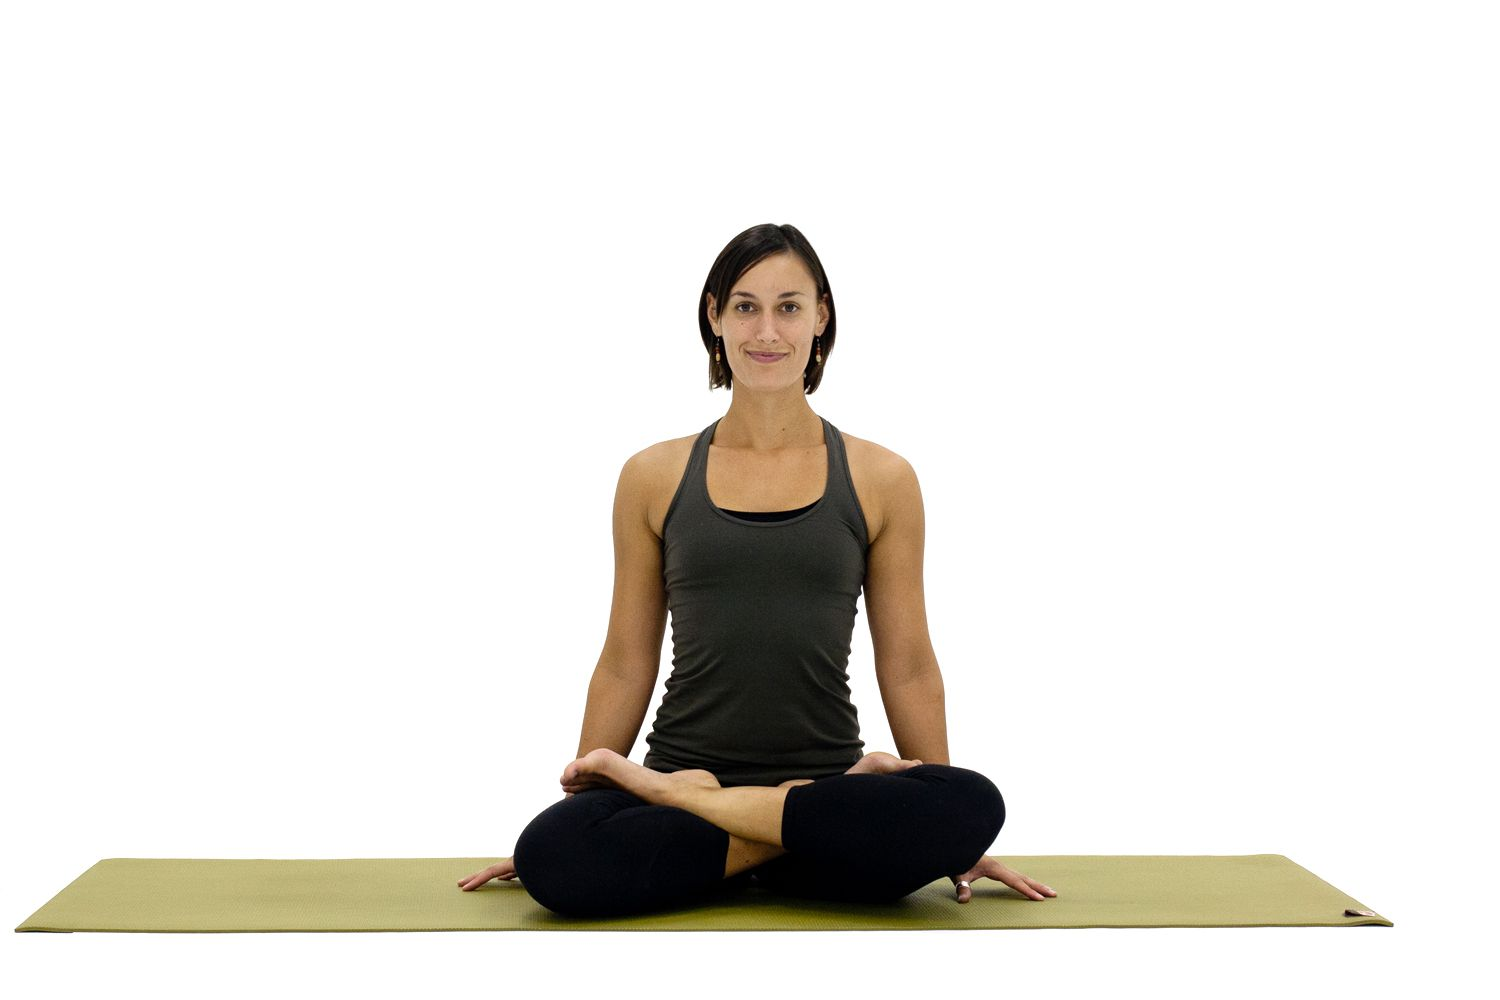 How To Do Lotus Pose Padmasana And Alternative Poses